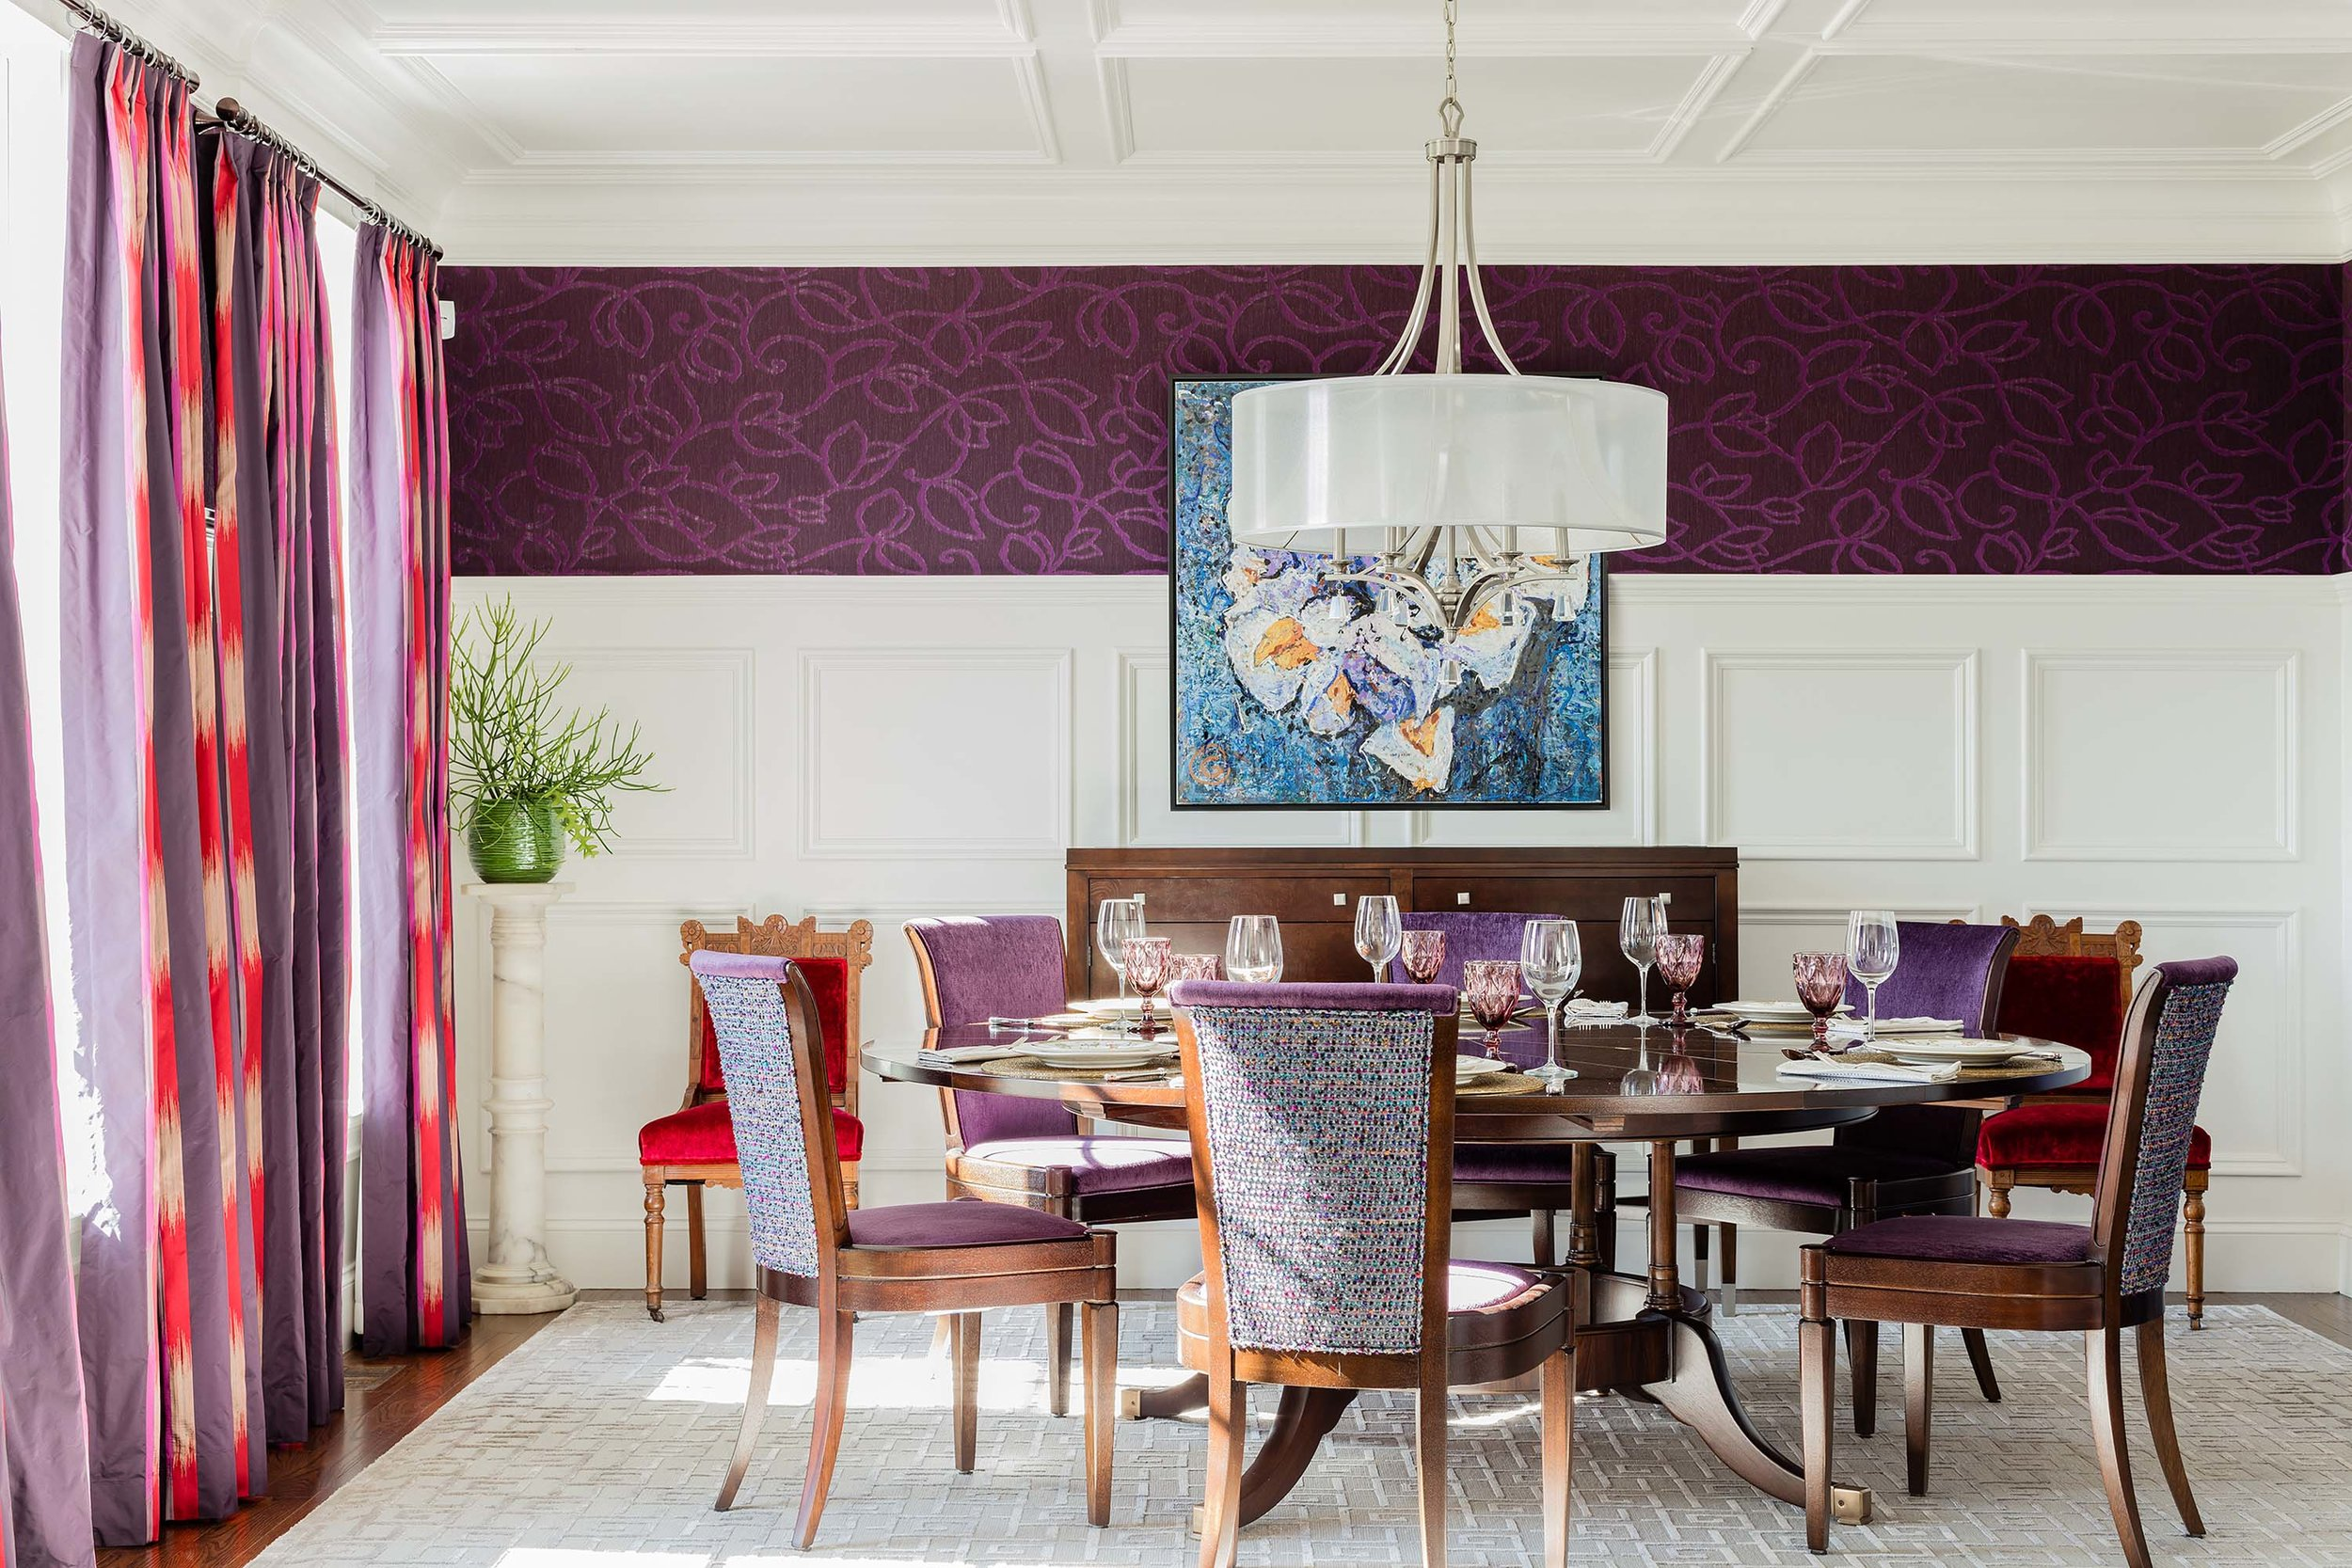 Dining room with white area rug, round wooden table, purple velvet chairs, and matching curtains, winfield thybony, wallpaper, fabric wallpaper, thomas o'brien, century furniture, chandler table